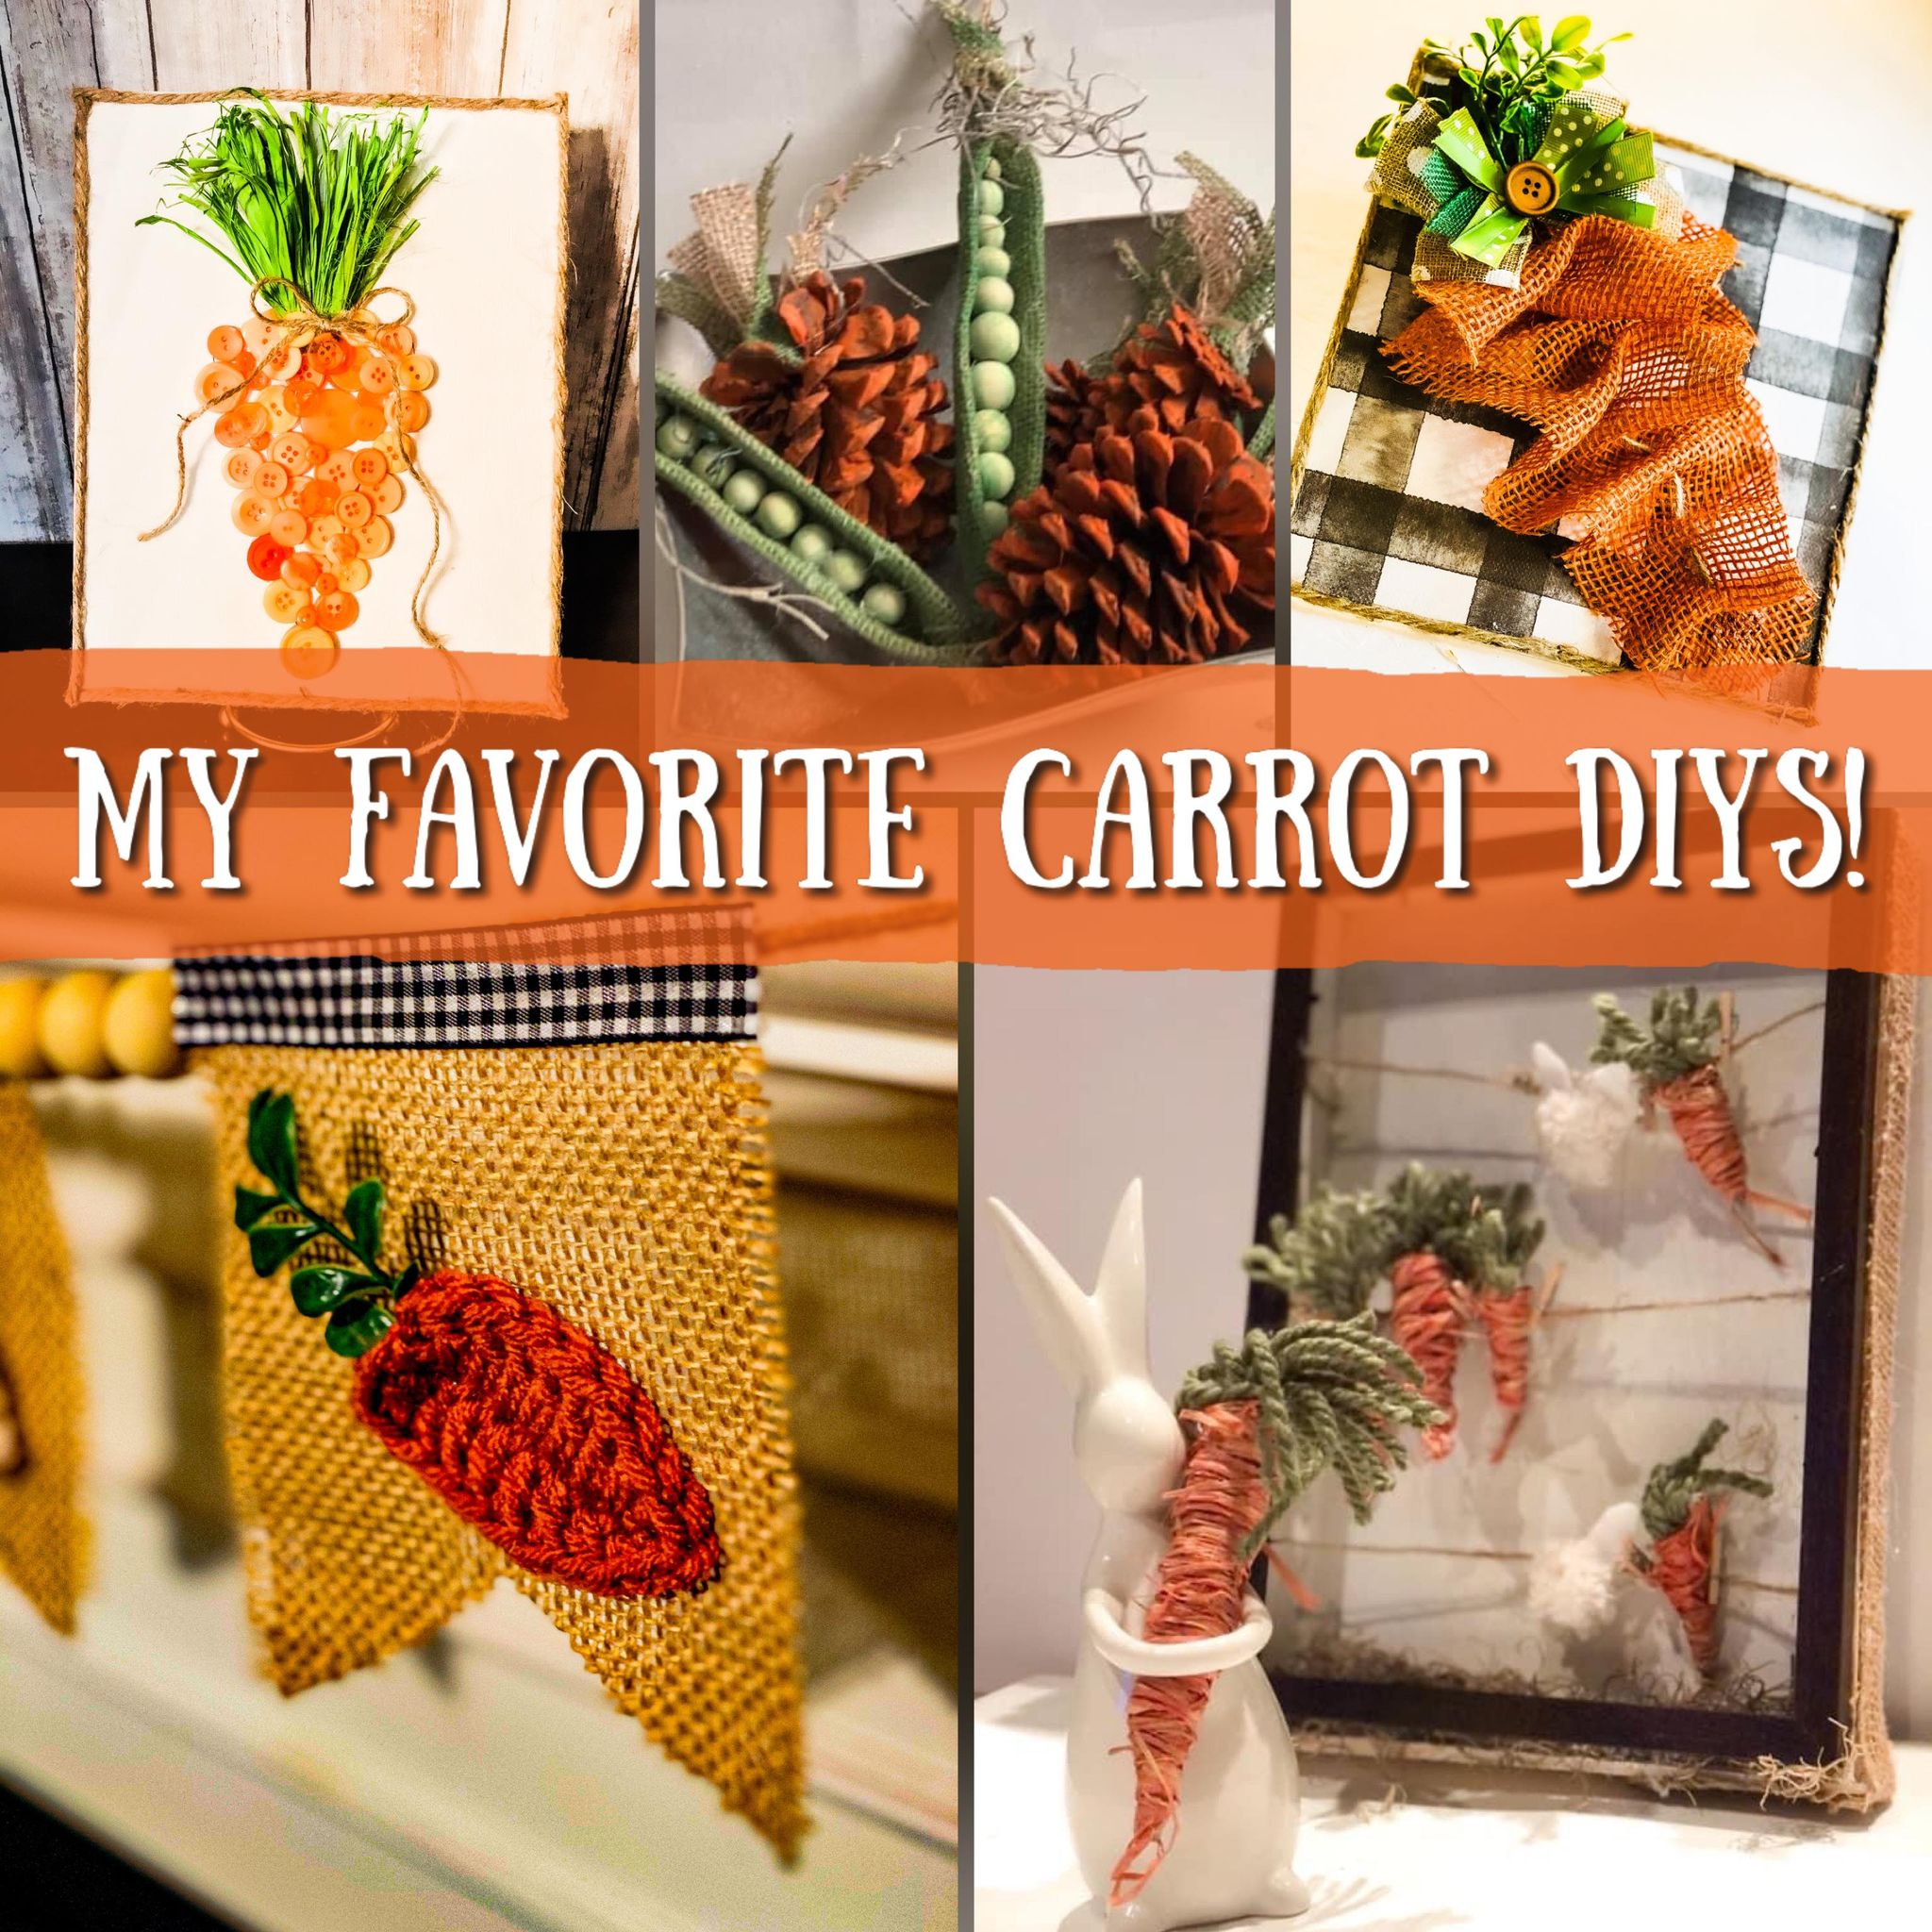 10 of the Best Carrot Crafts for Spring